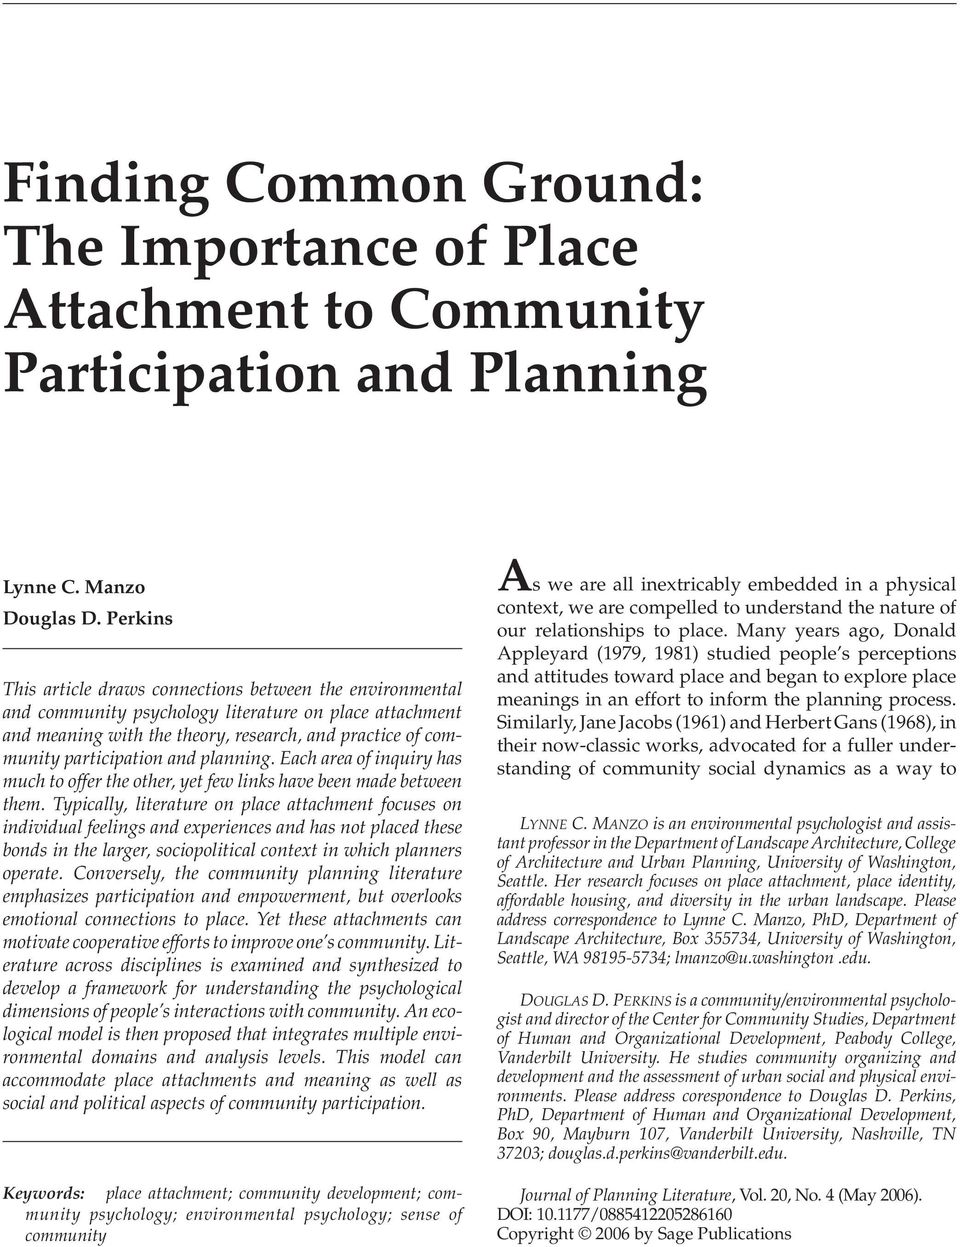 Perkins This article draws connections between the environmental and community psychology literature on place attachment and meaning with the theory, research, and practice of community participation